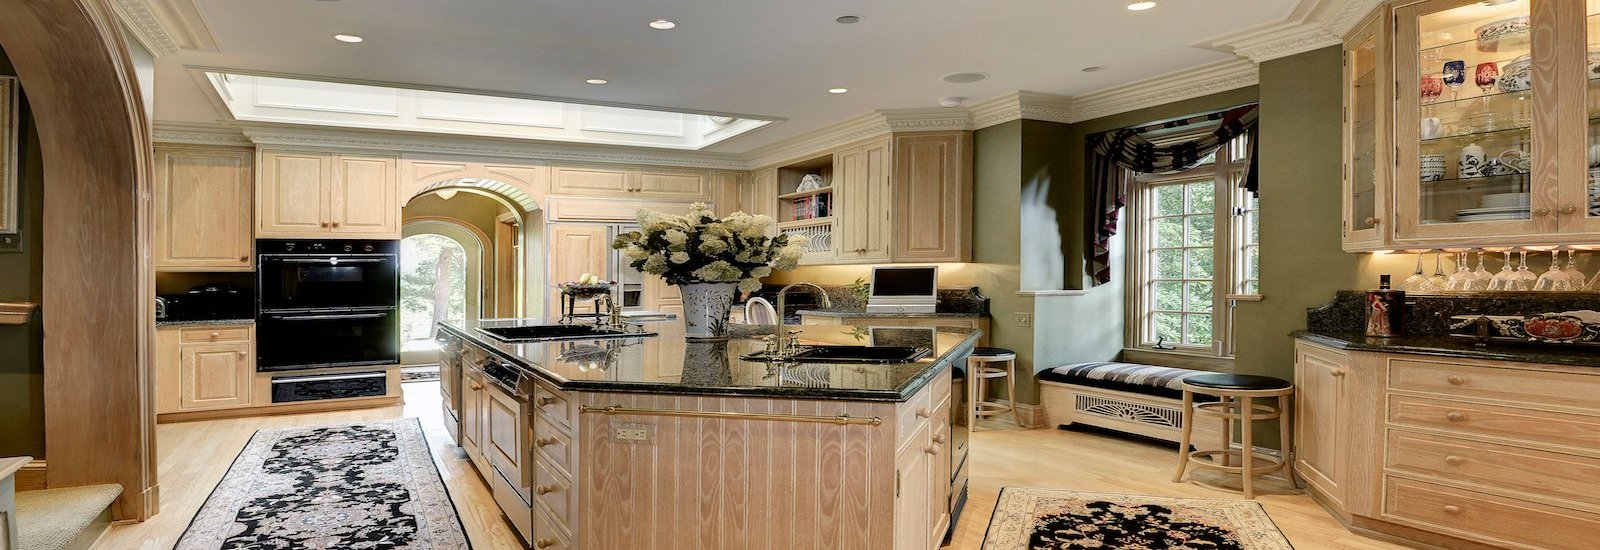 Form Follows Food Luxury Kitchens From Around The World